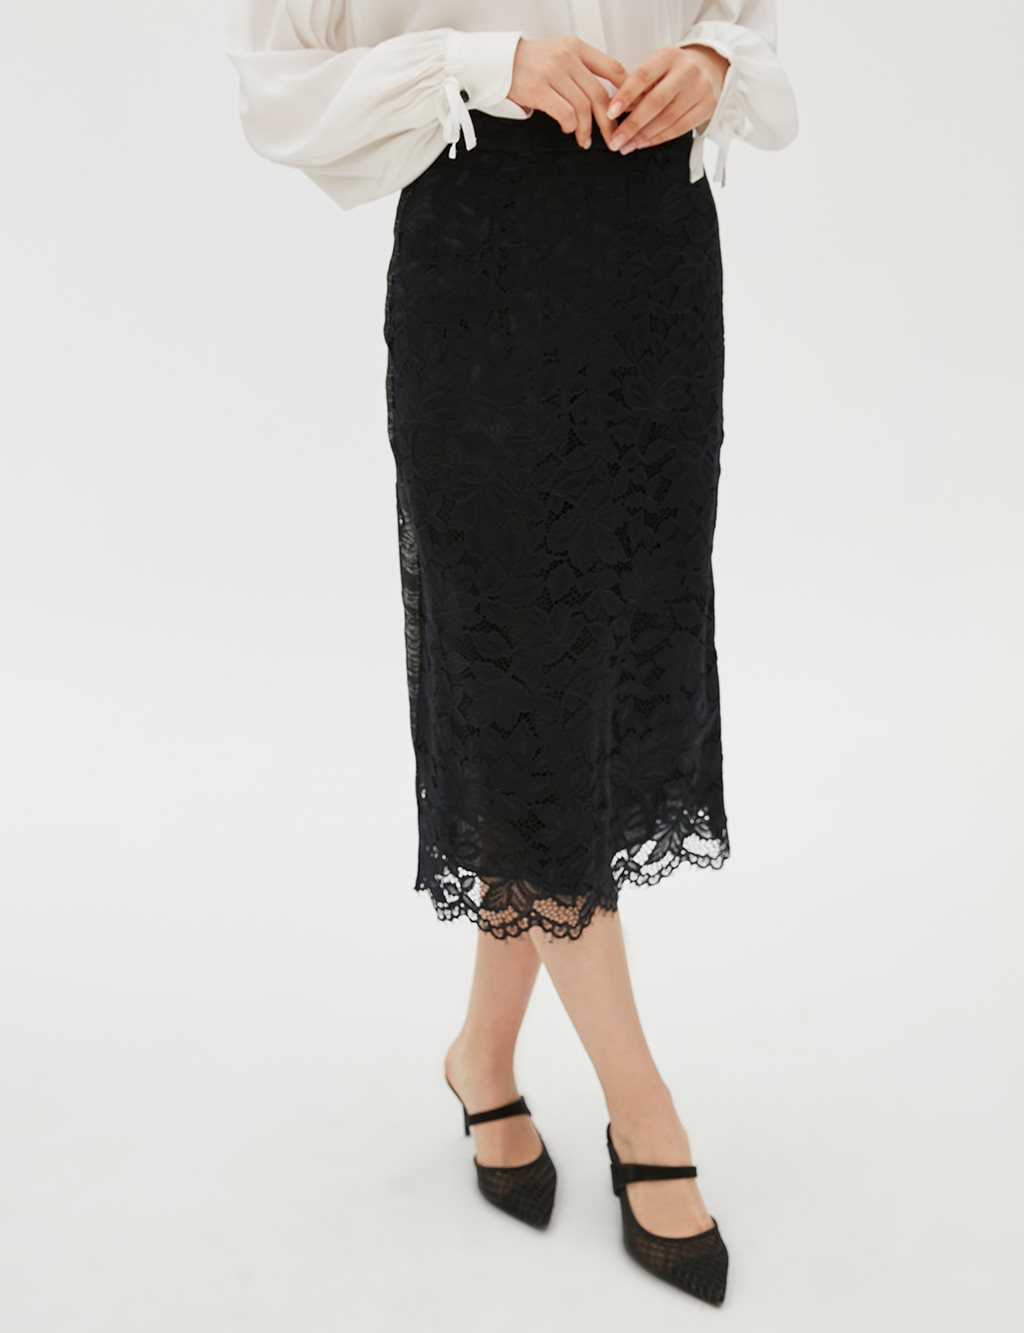 Lace Skirt B20 12042 Black